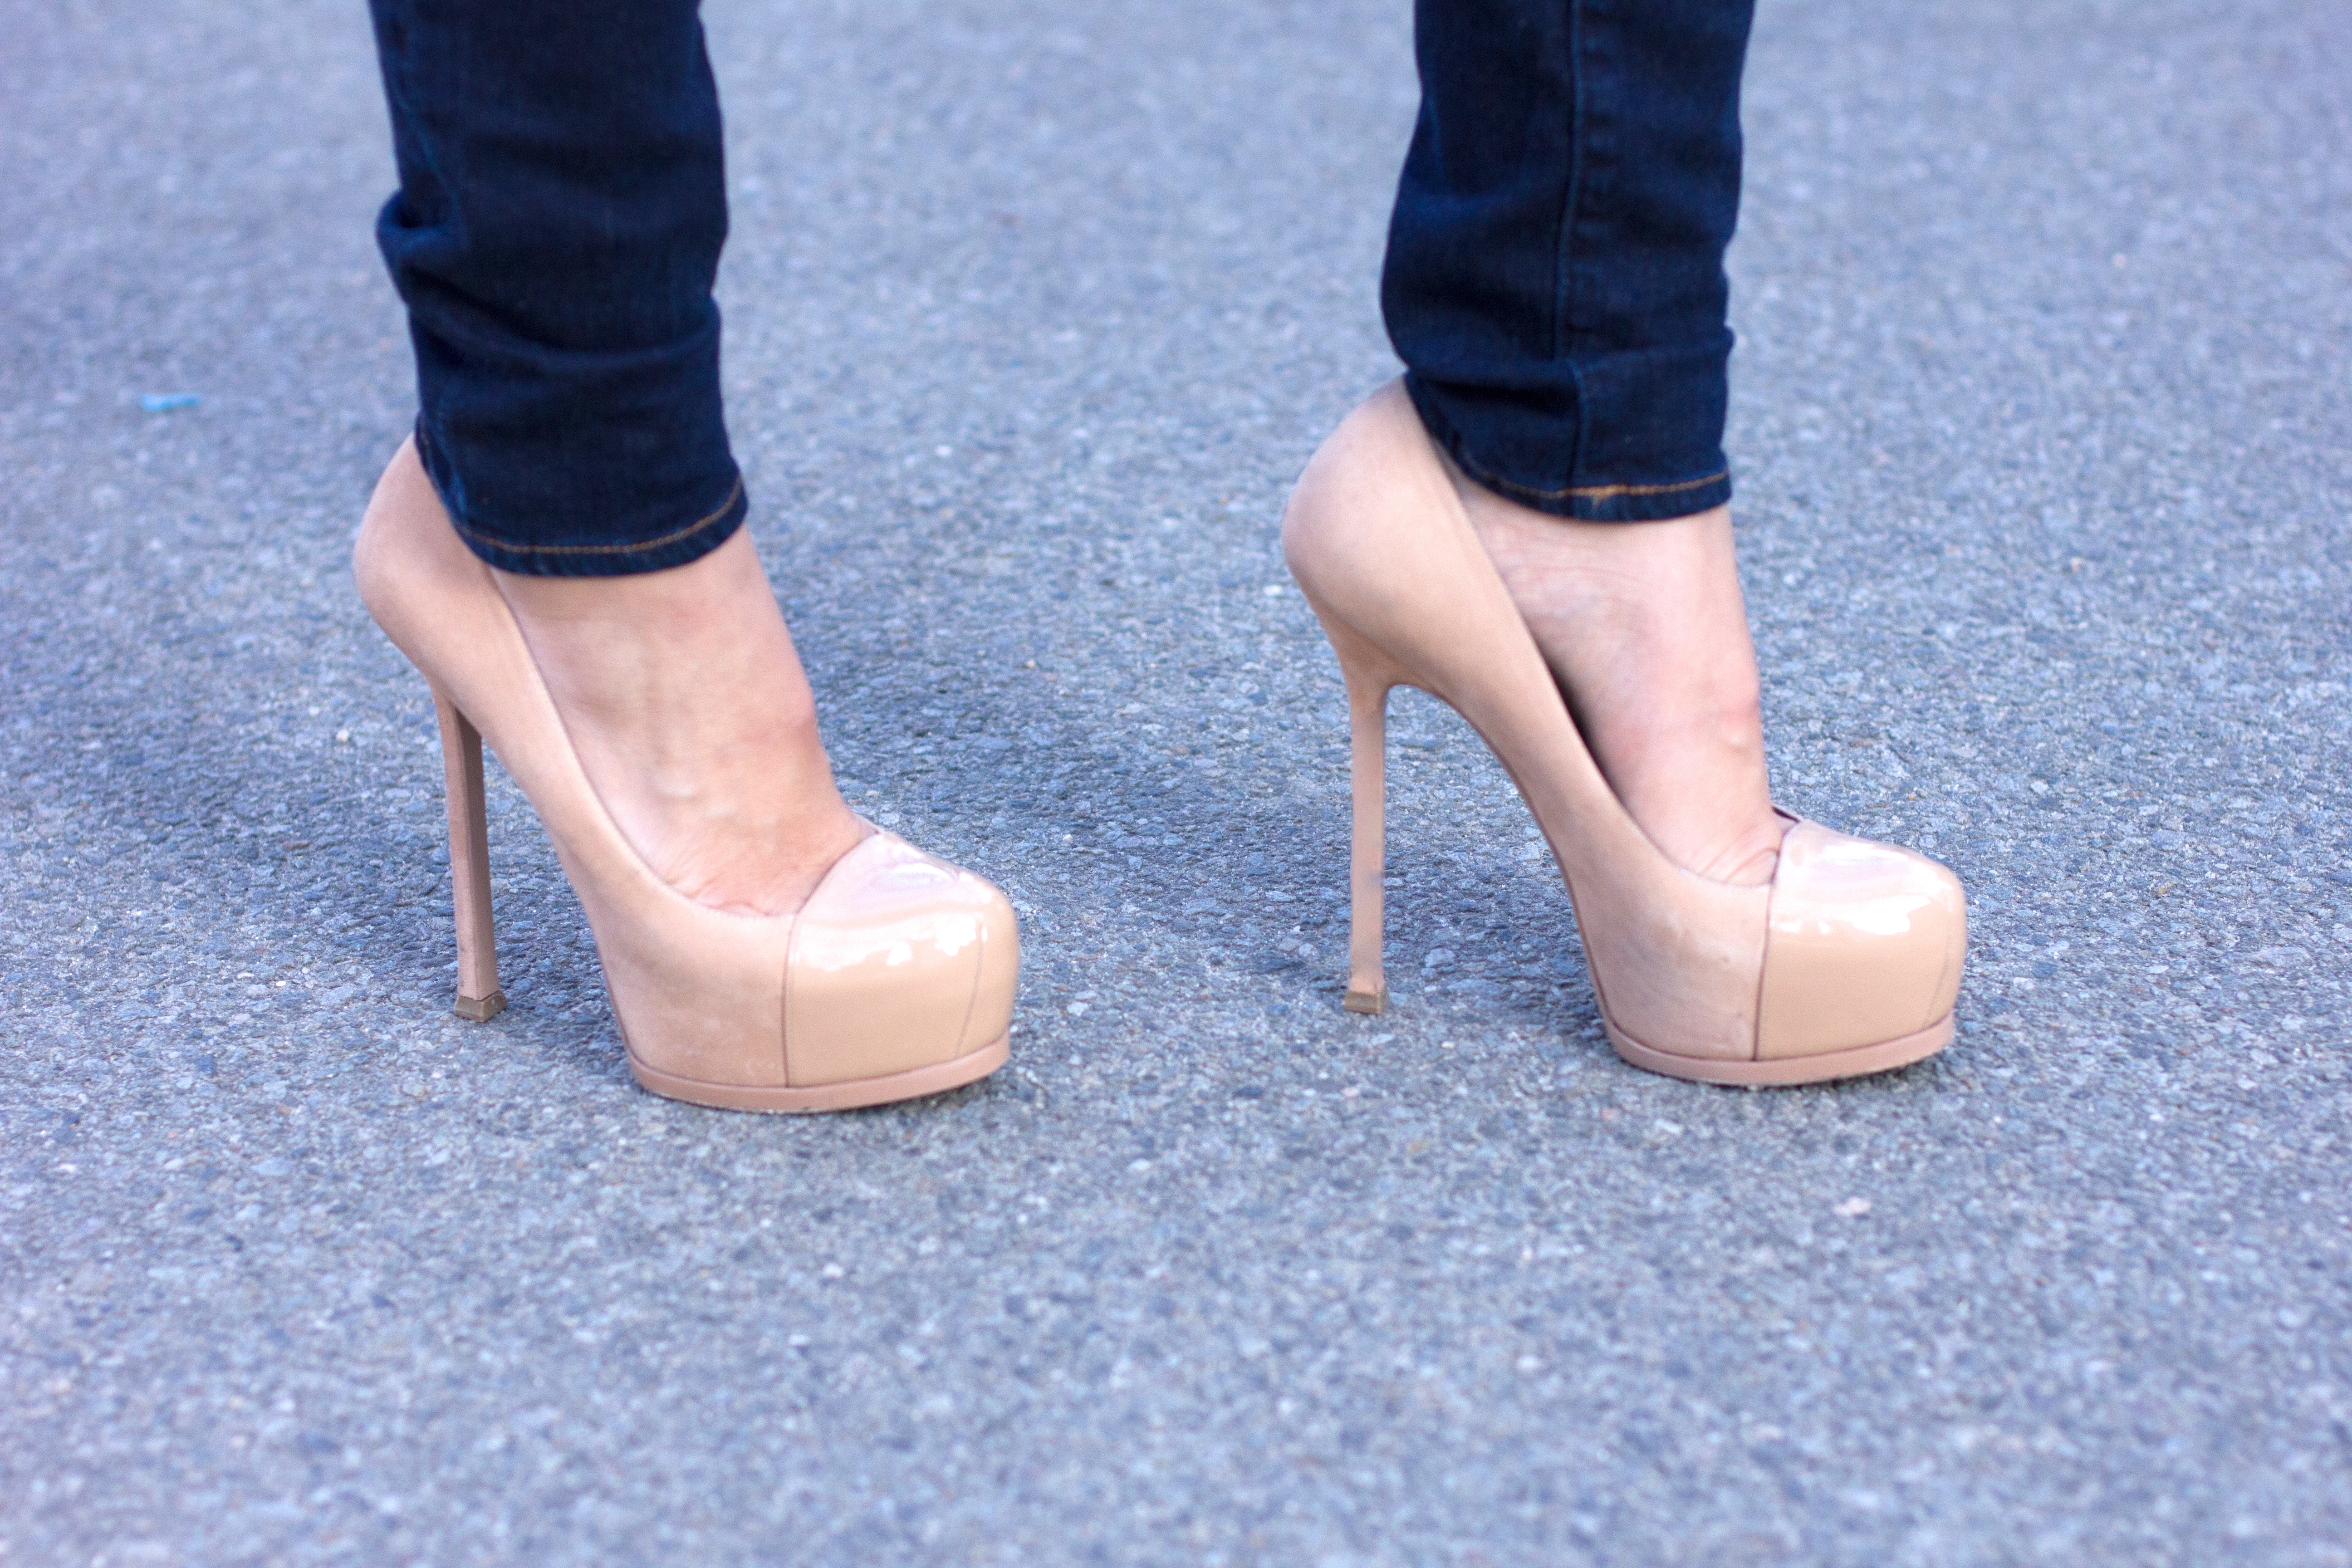 Yves Saint Laurent Tribute Two Pumps sale low cost free shipping finishline KLmns